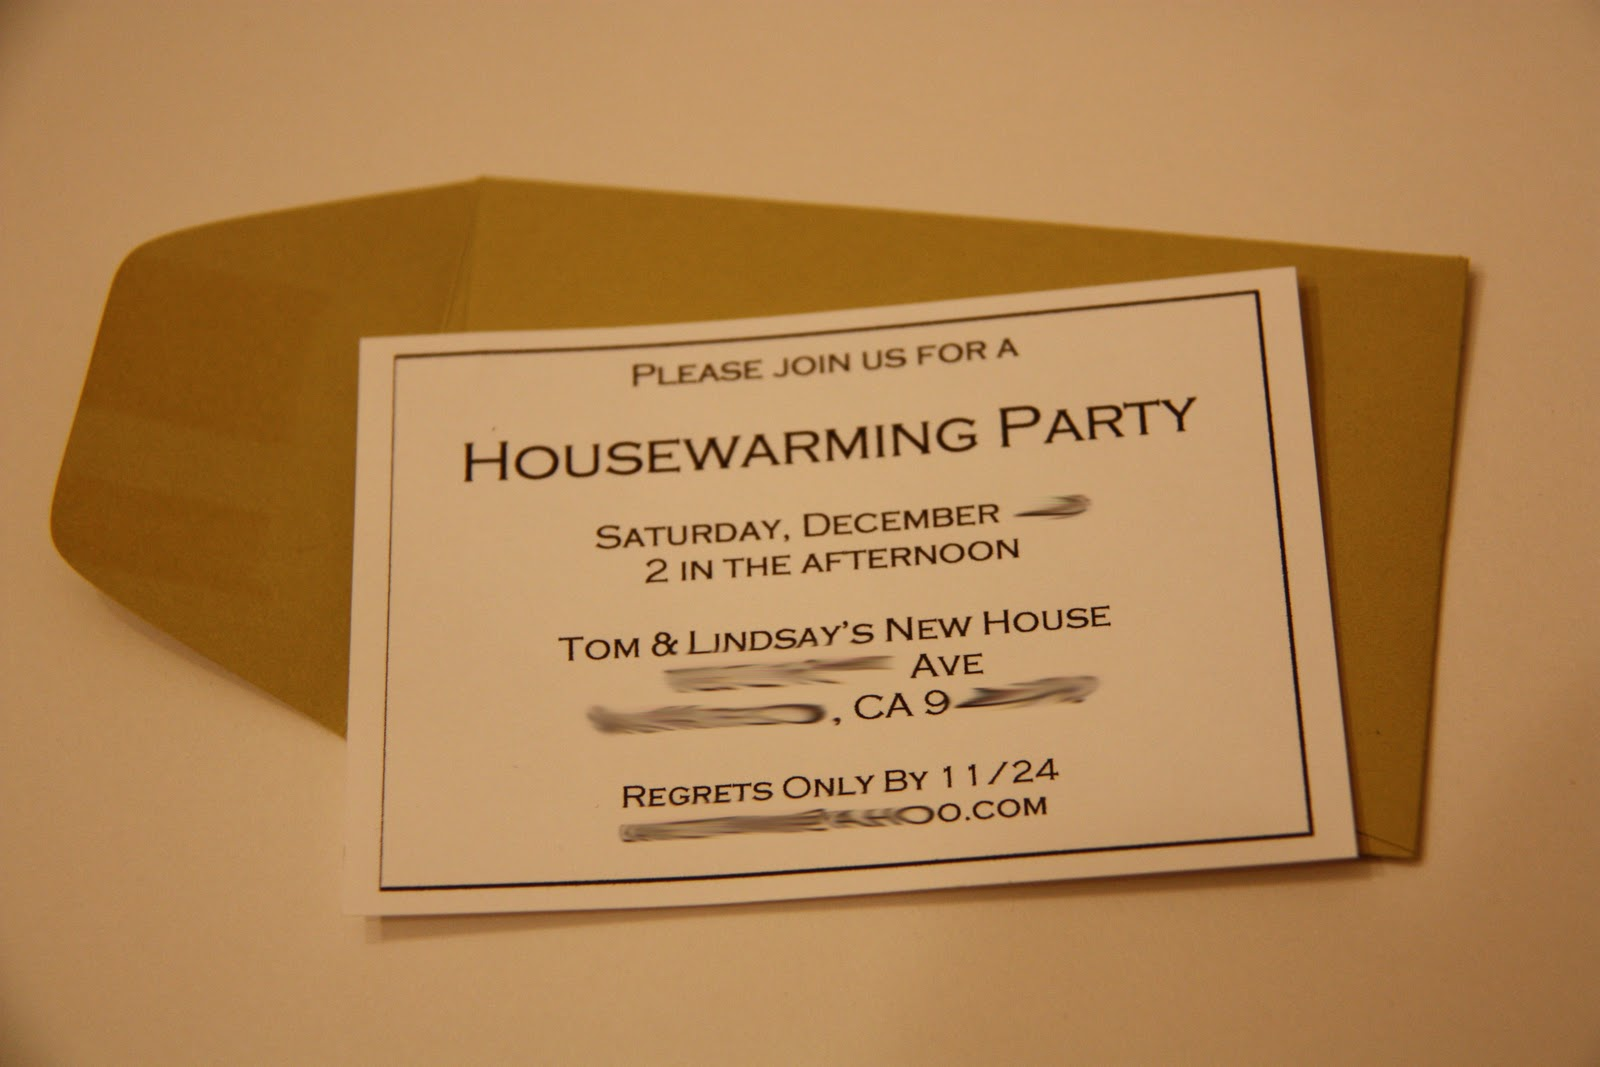 housewarming party invites free template - housewarming party invites barnwood lights aqua